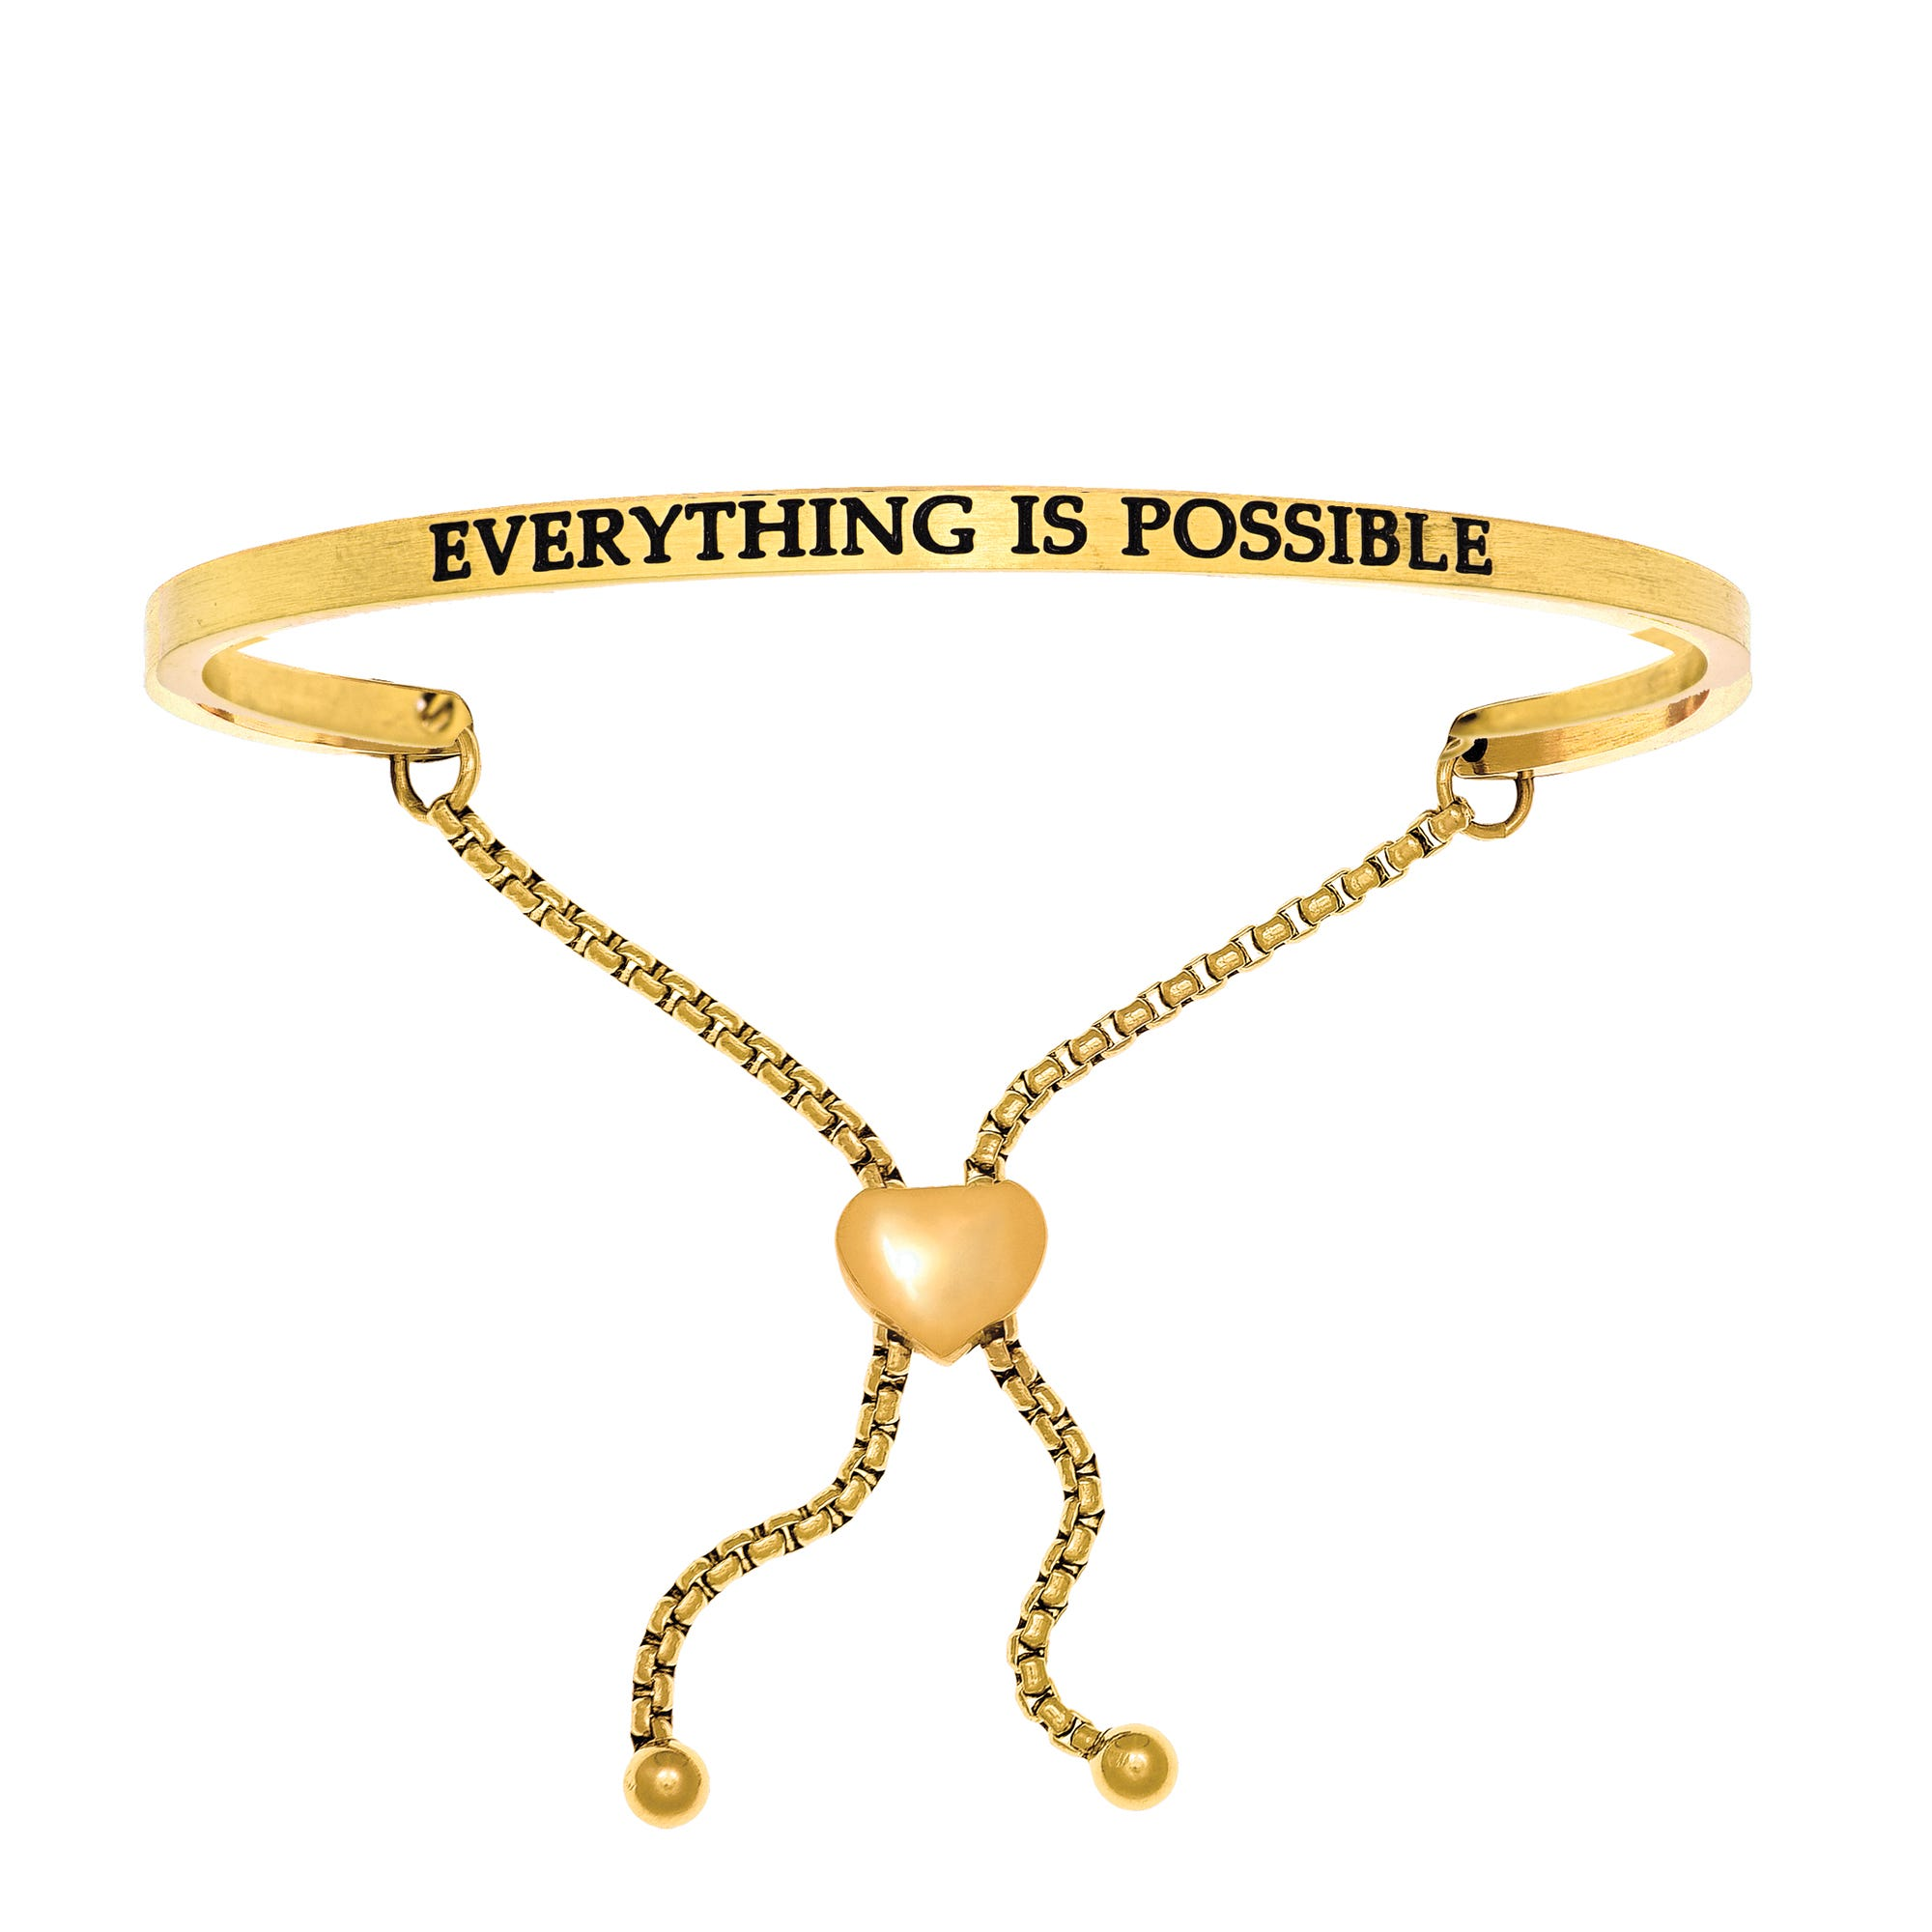 Everything Is Possible. Intuitions Bolo Bracelet in Yellow Stainless Steel